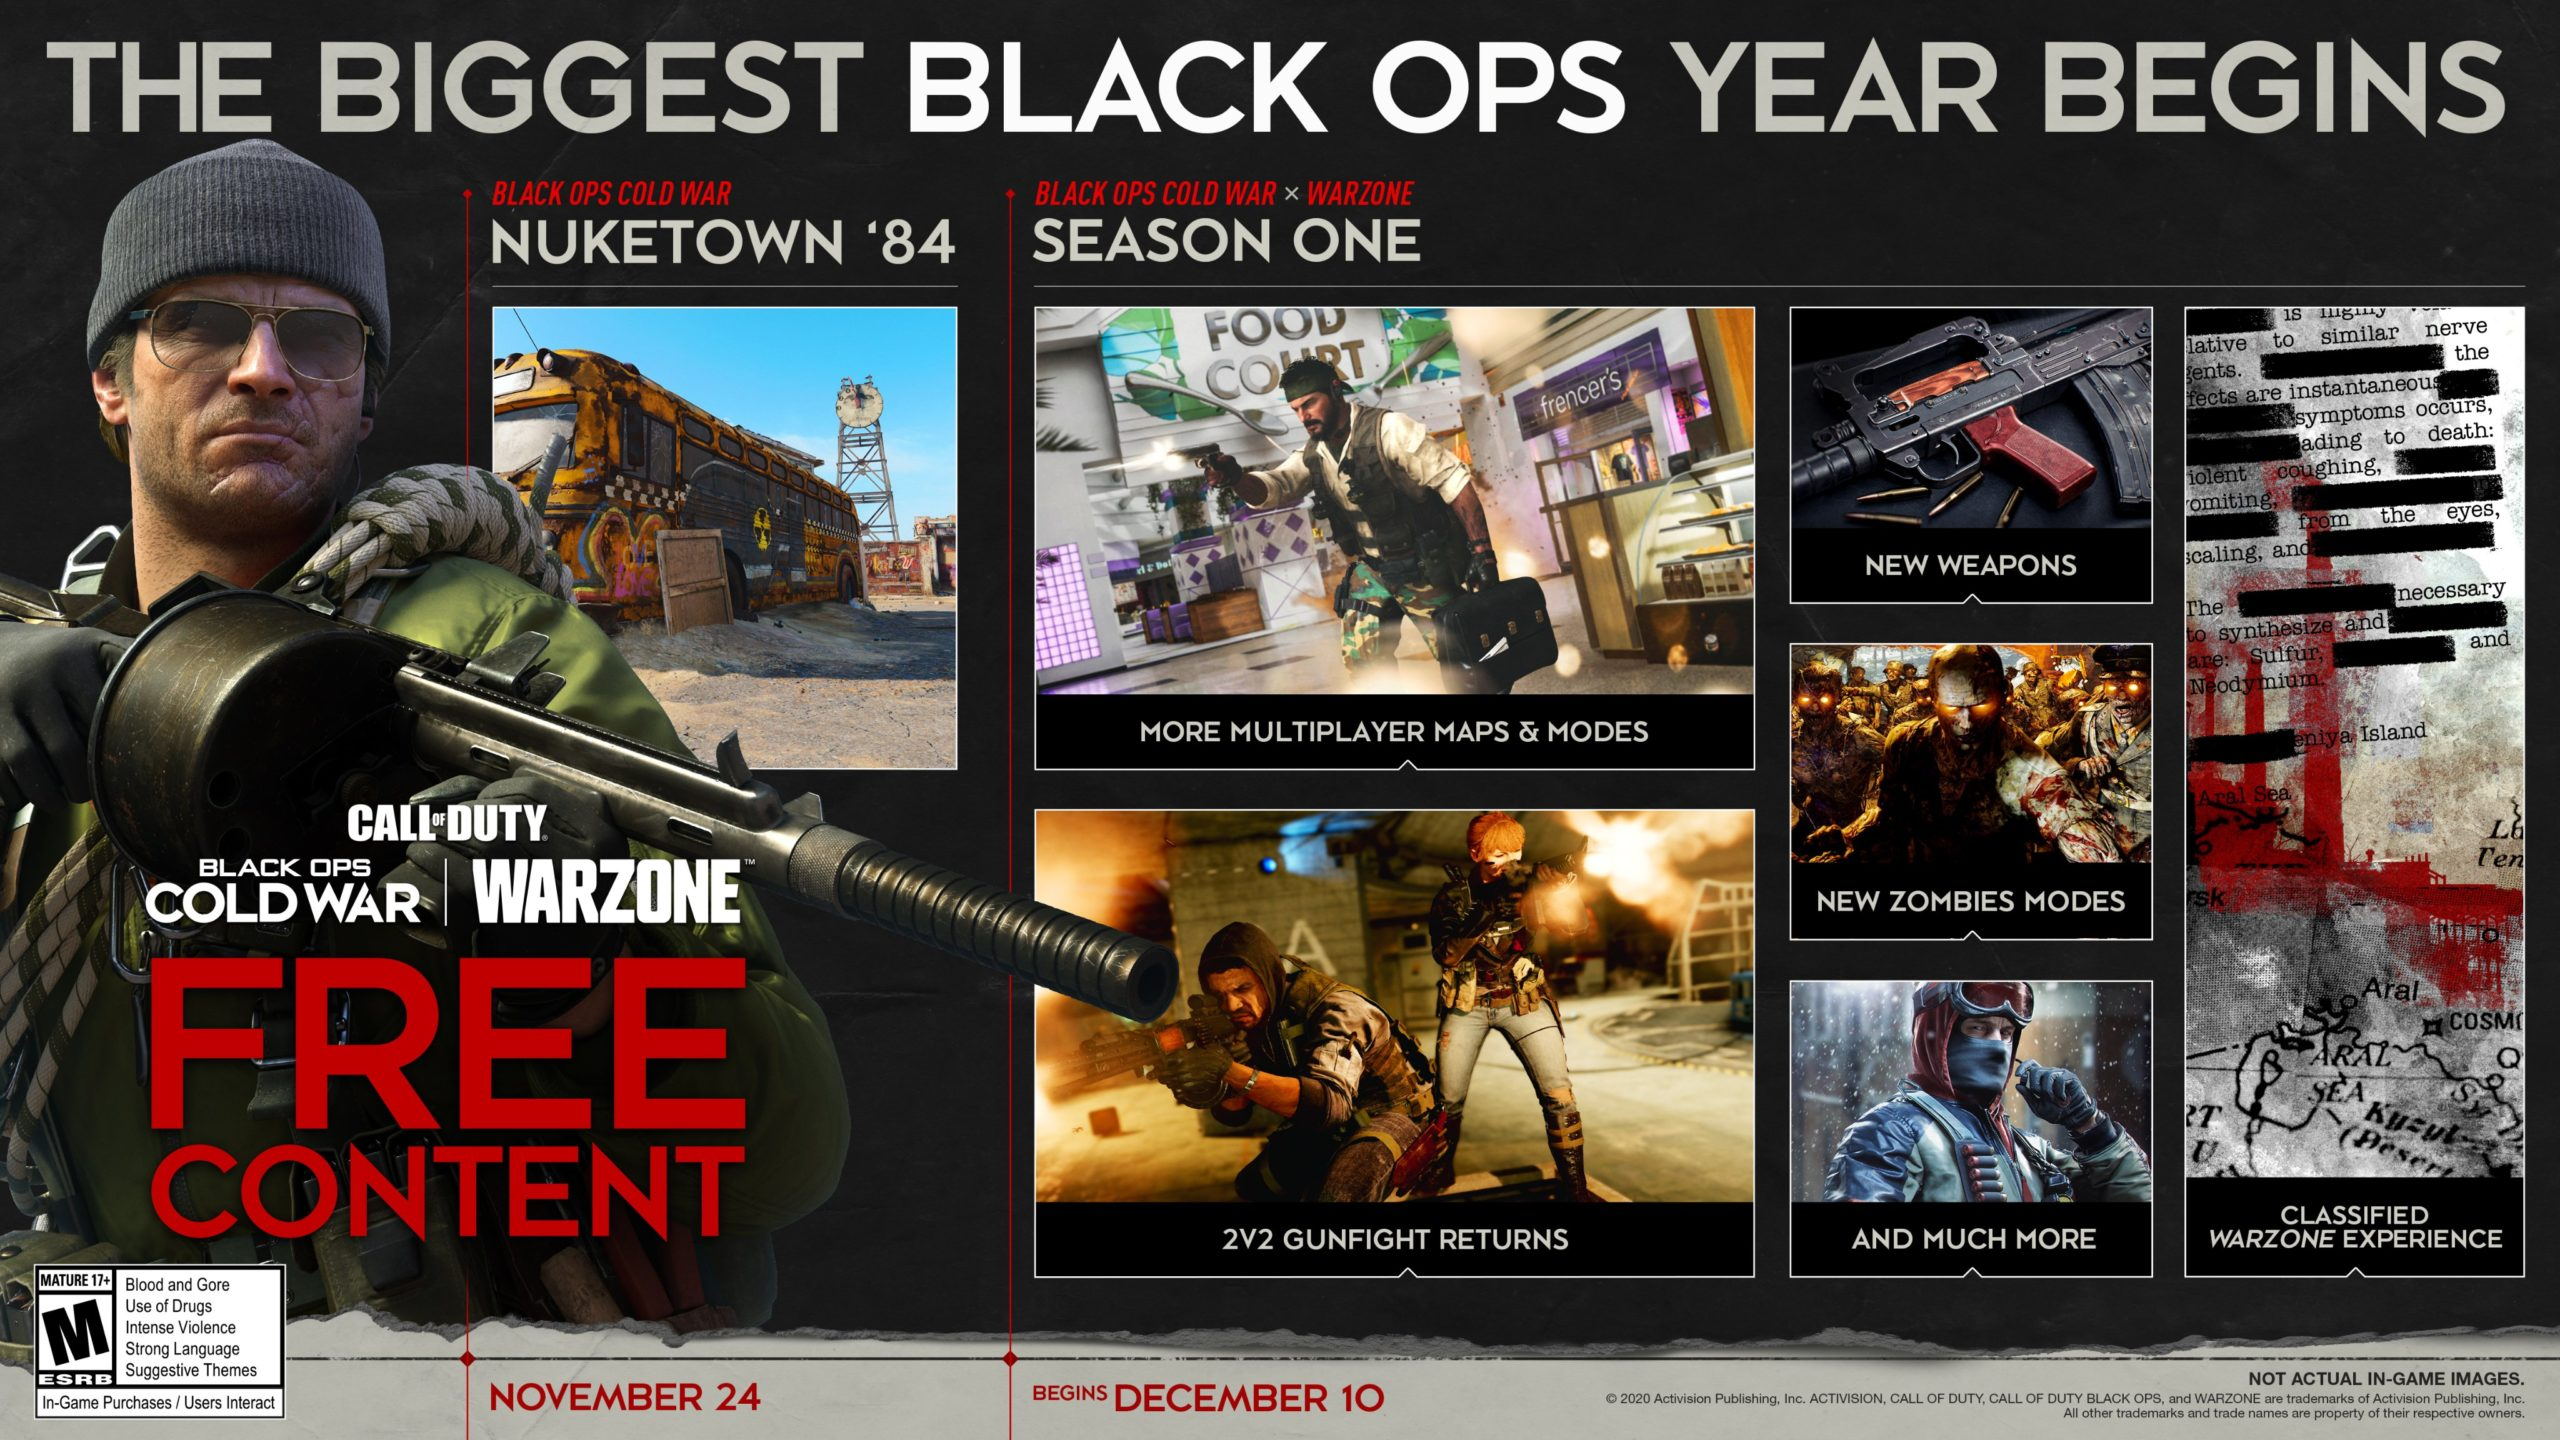 Call Of Duty Black Ops Cold War S Season 1 Start Date And Roadmap Have Been Revealed Vgc